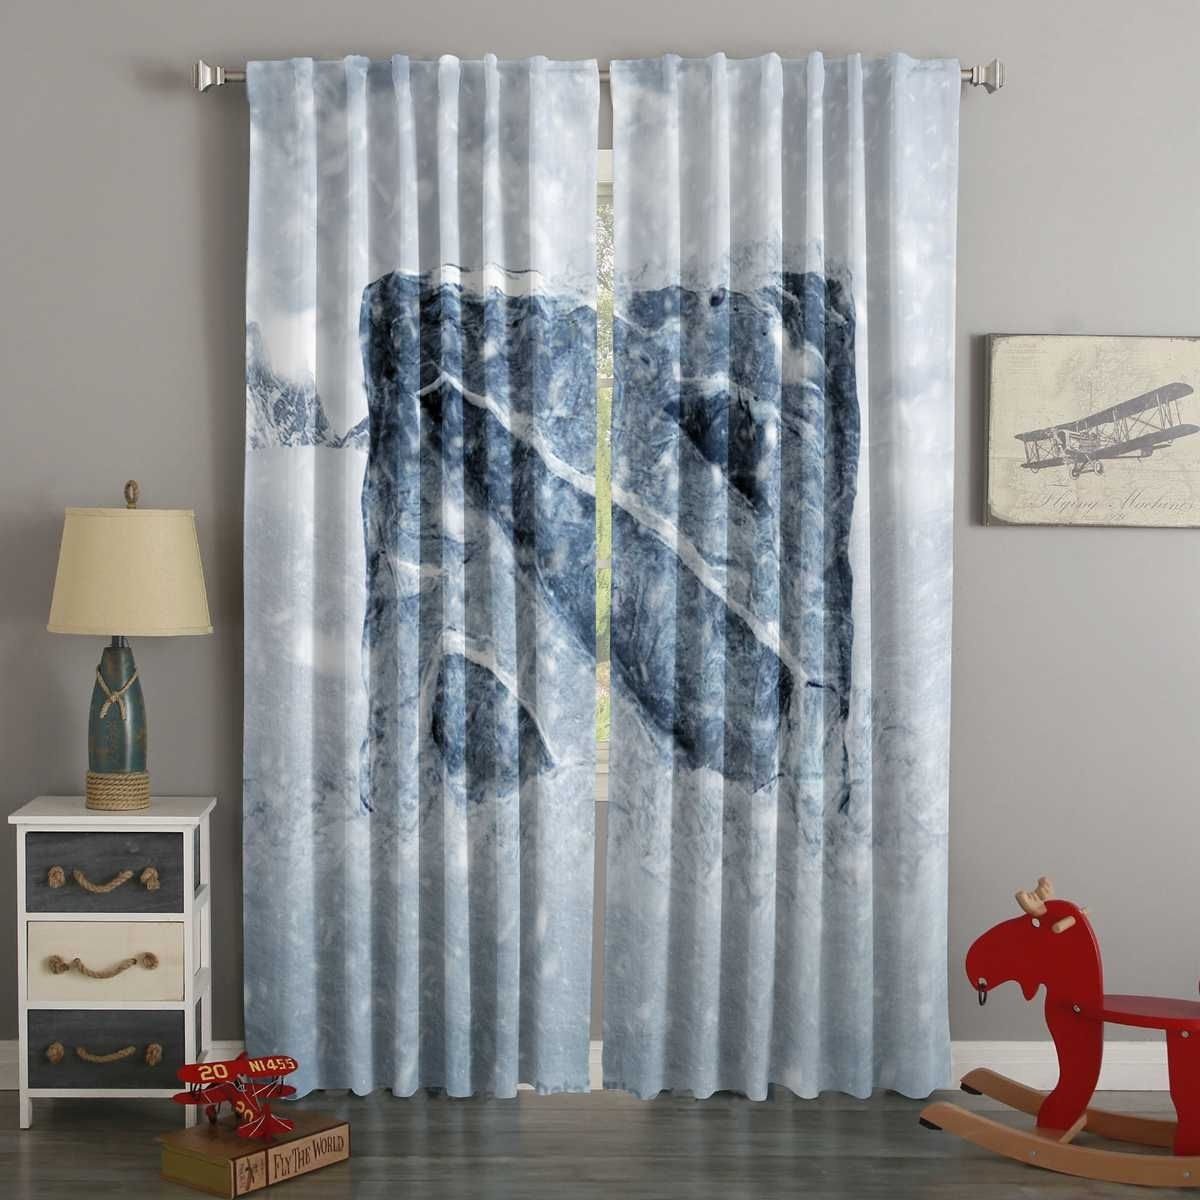 3d Printed Dota2 Style Custom Living Room Curtains Curtains Living Room Curtains Custom Curtains #print #curtains #living #room